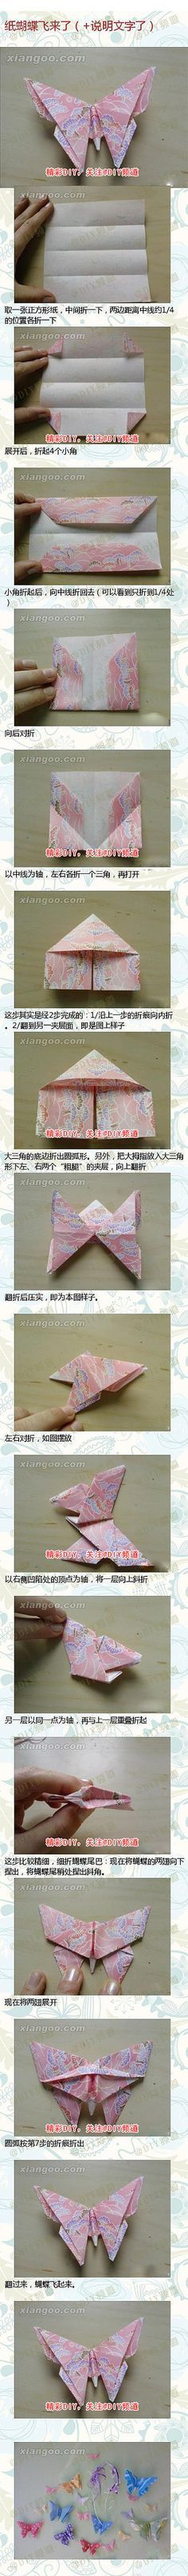 .Origami Butterfly More